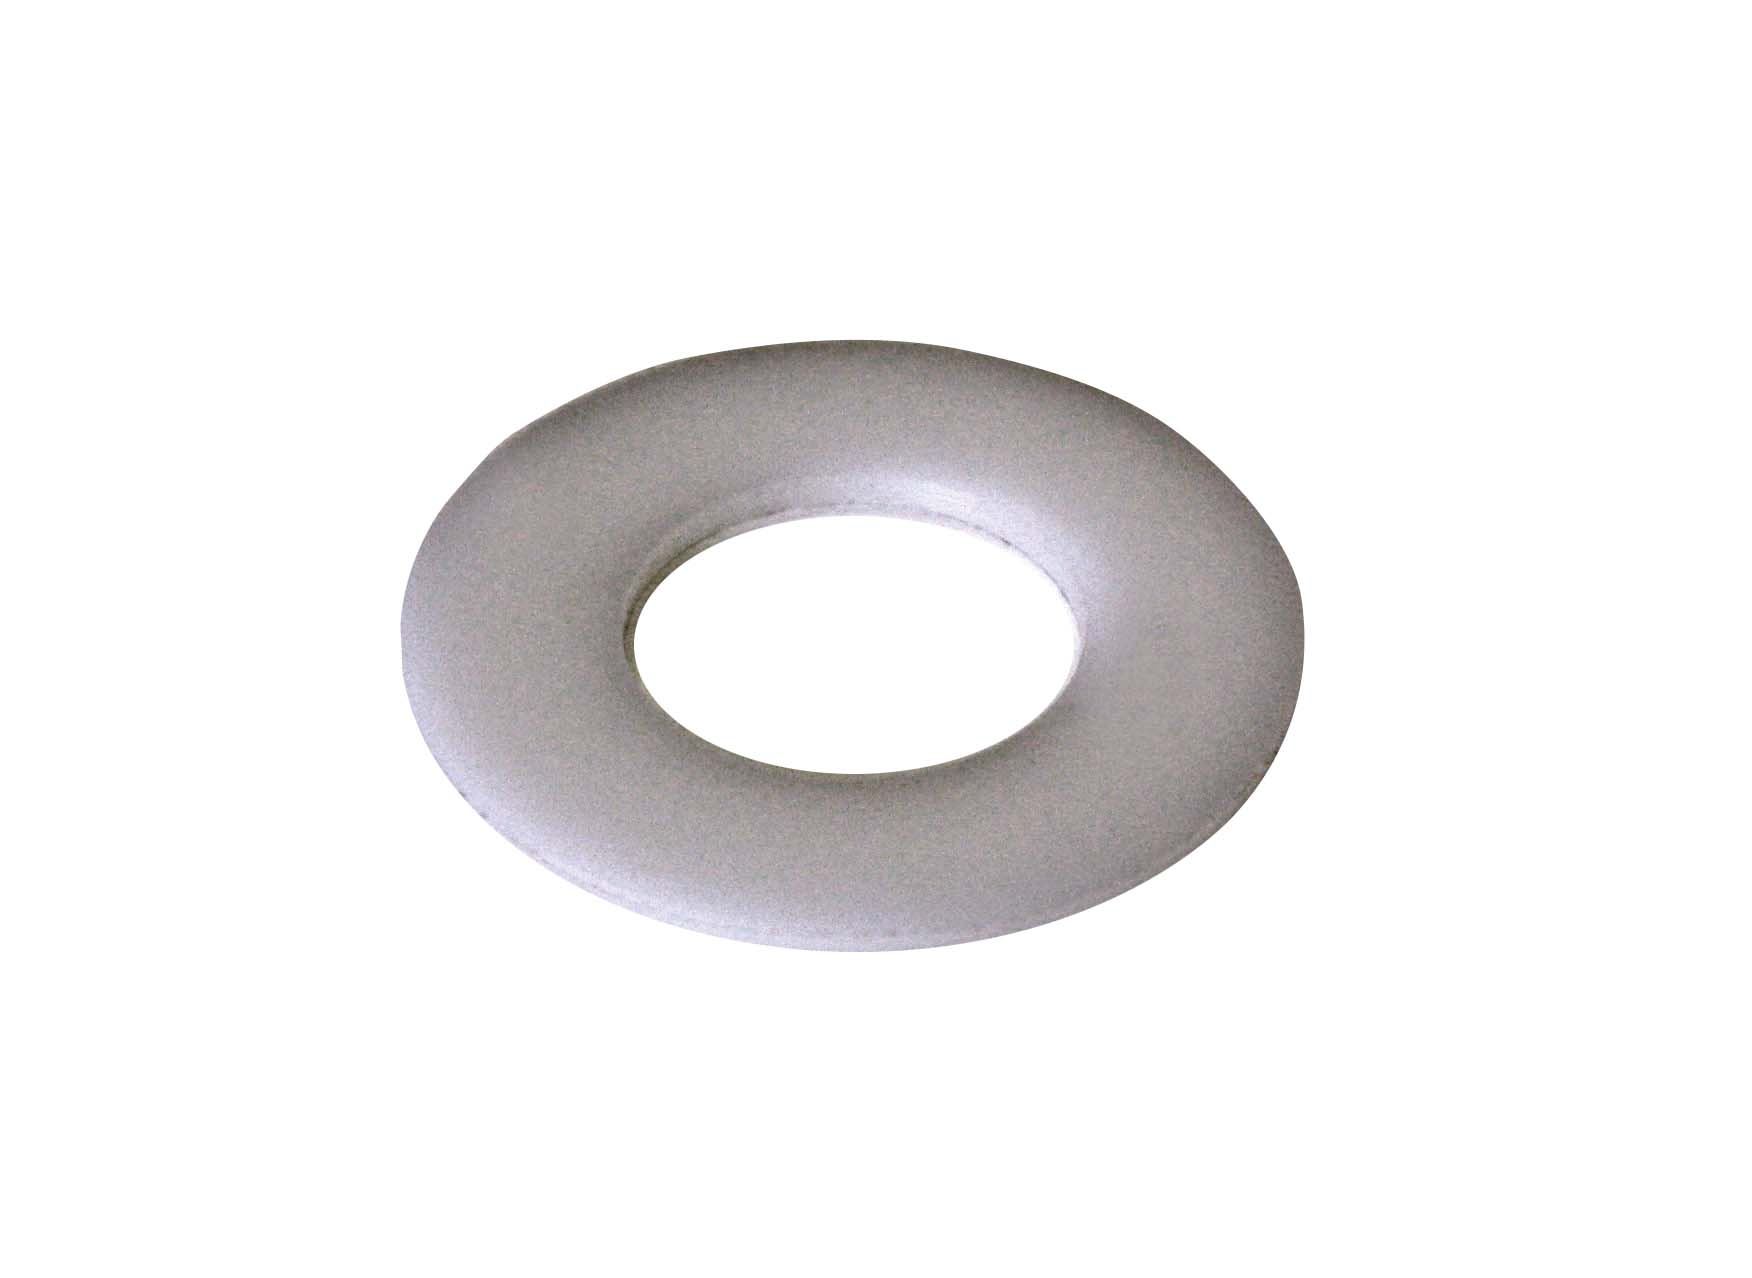 350358-00 Roadmaster Washer Replacement For Stowmaster and Flacon2